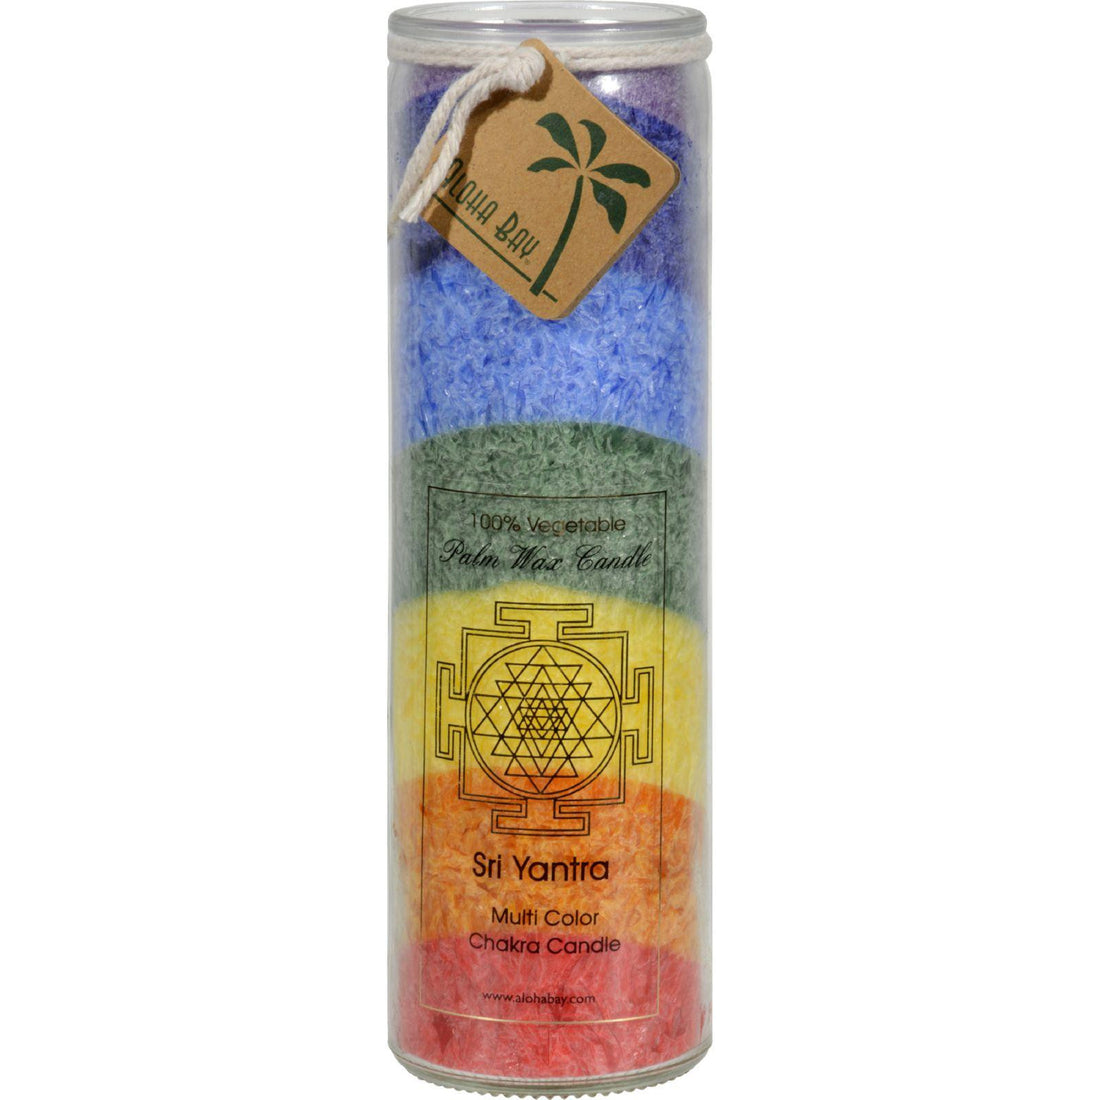 Mother Mantis: Aloha Bay Unscented Chakra Jar Rainbow Sri Yantra 7 Color - 1 Candle Aloha Bay